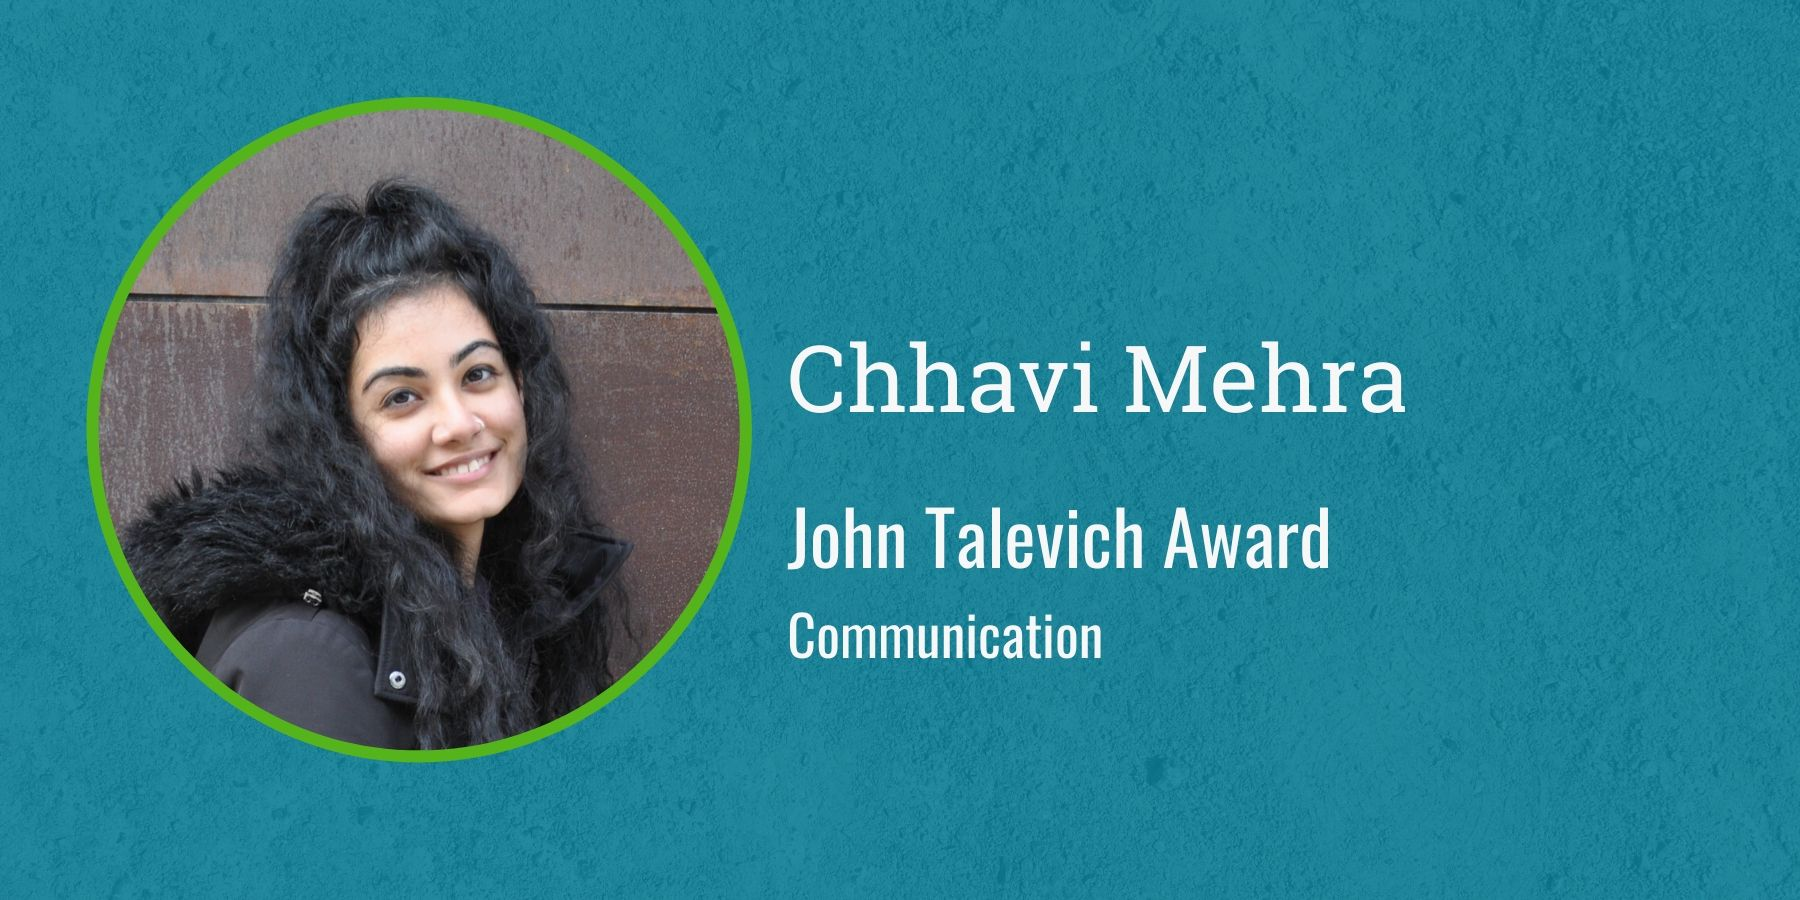 Photo of Chhavi Mehra with text John Talevich Award, Communication